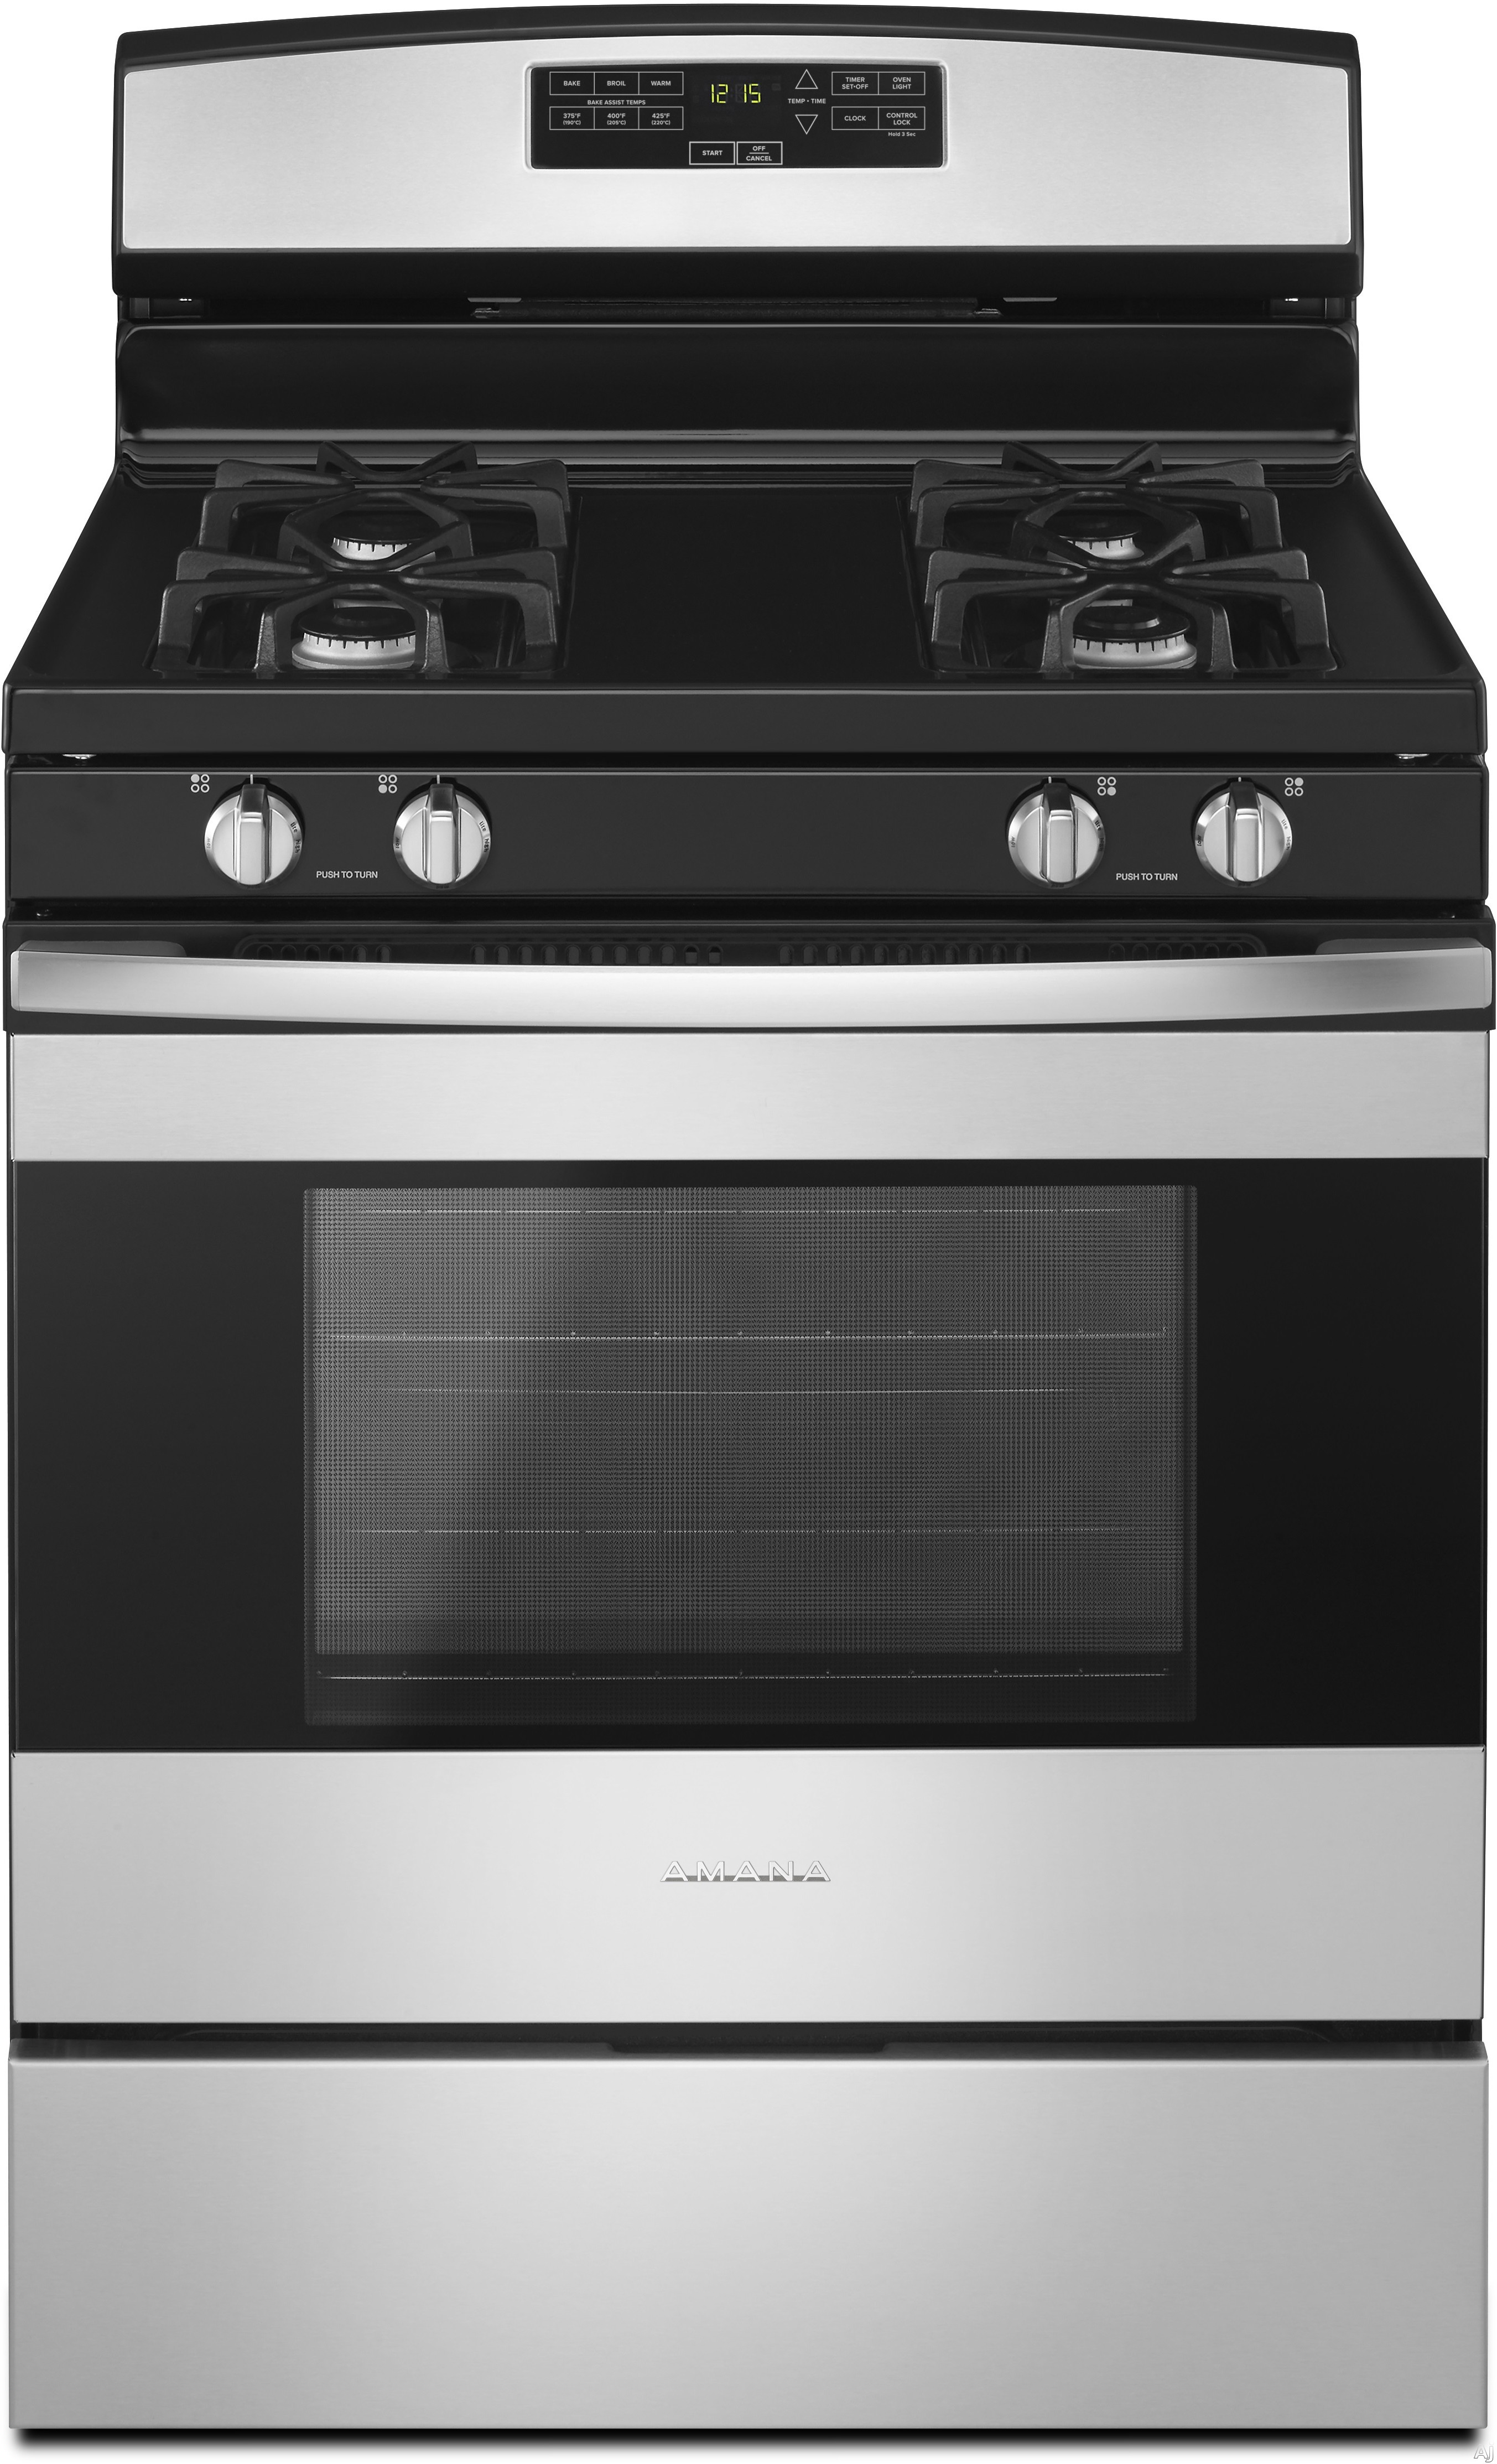 Amana Agr6303mf 30 Inch Gas Range With Bake Assist, Easy Touch Controls, Warm Hold, 4 Sealed Burners, 5.0 Cu. Ft. Oven Capacity, Extra-large Oven Window Oven Lockout, Sabbath Mode And Storage Drawer